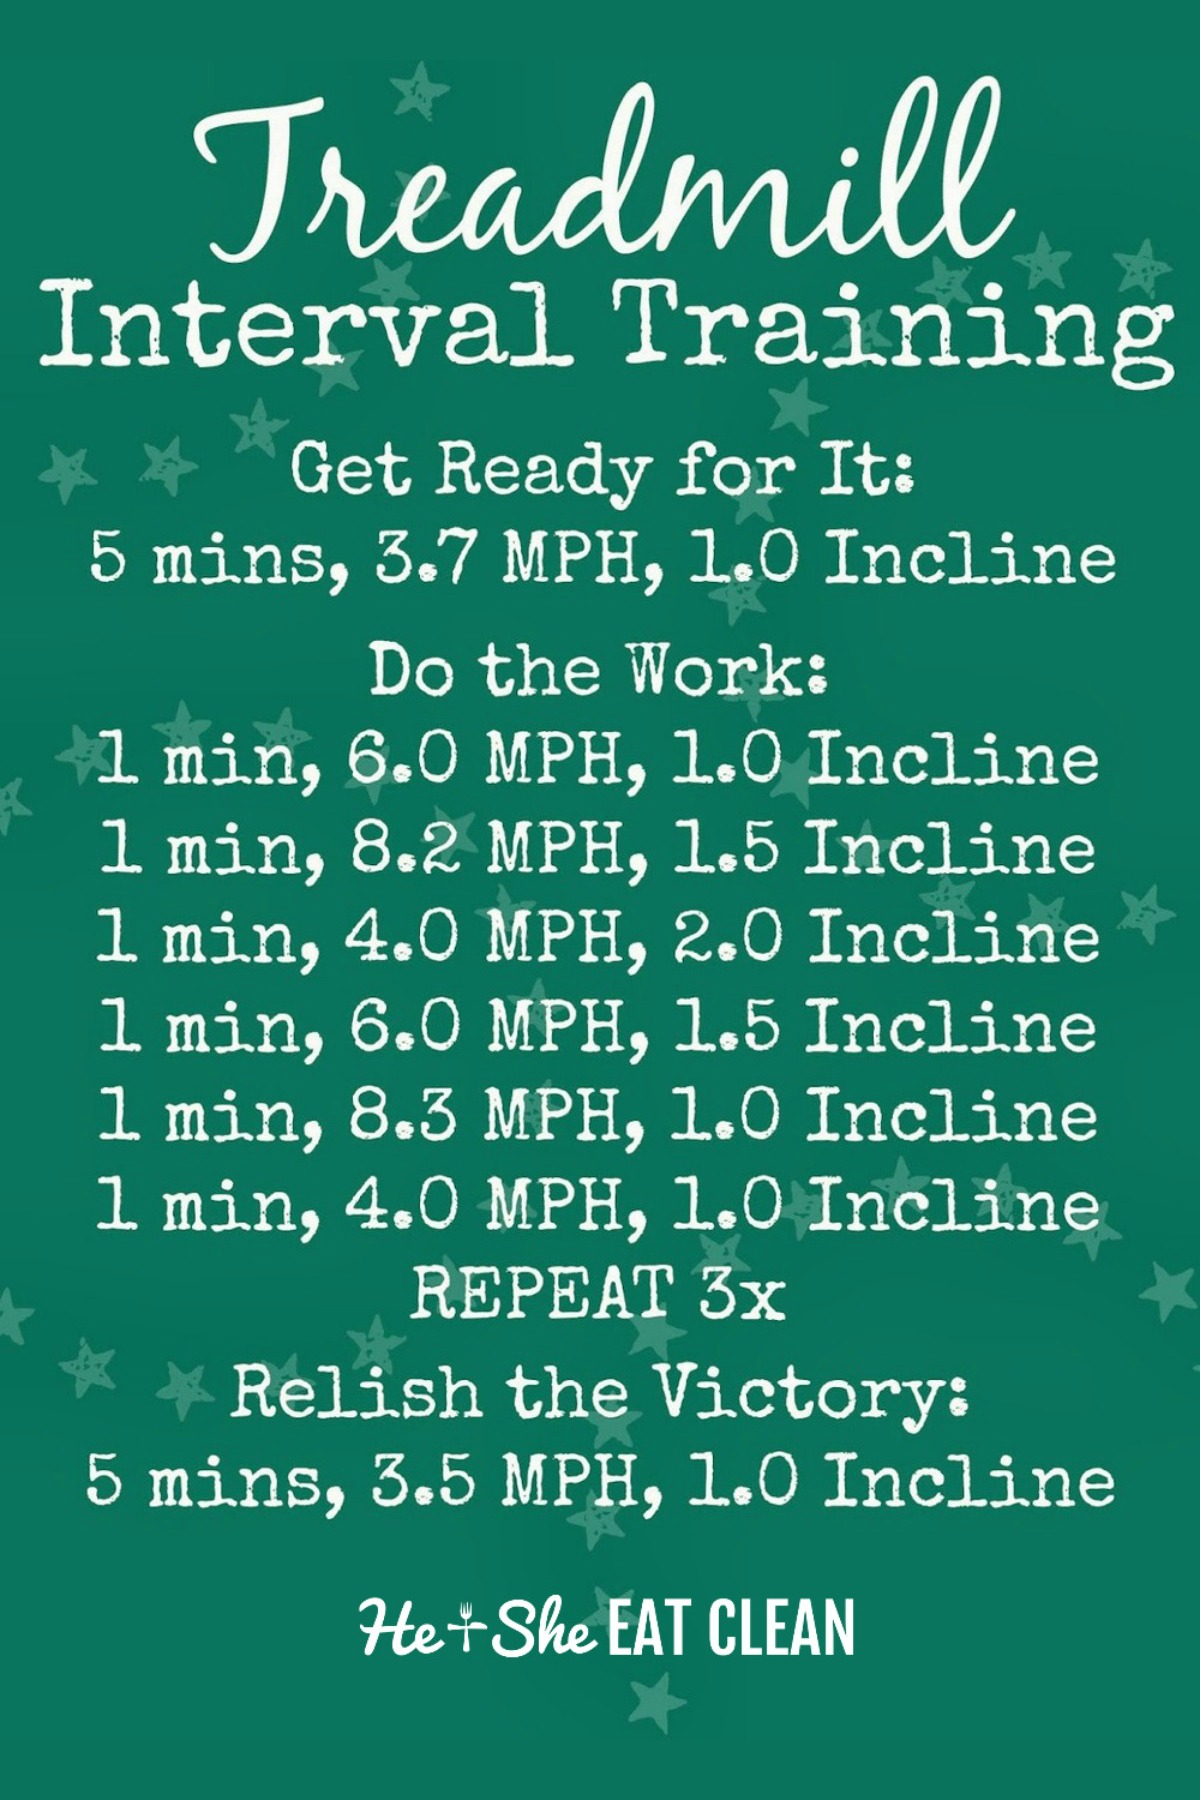 treadmill workout with speed and incline listed